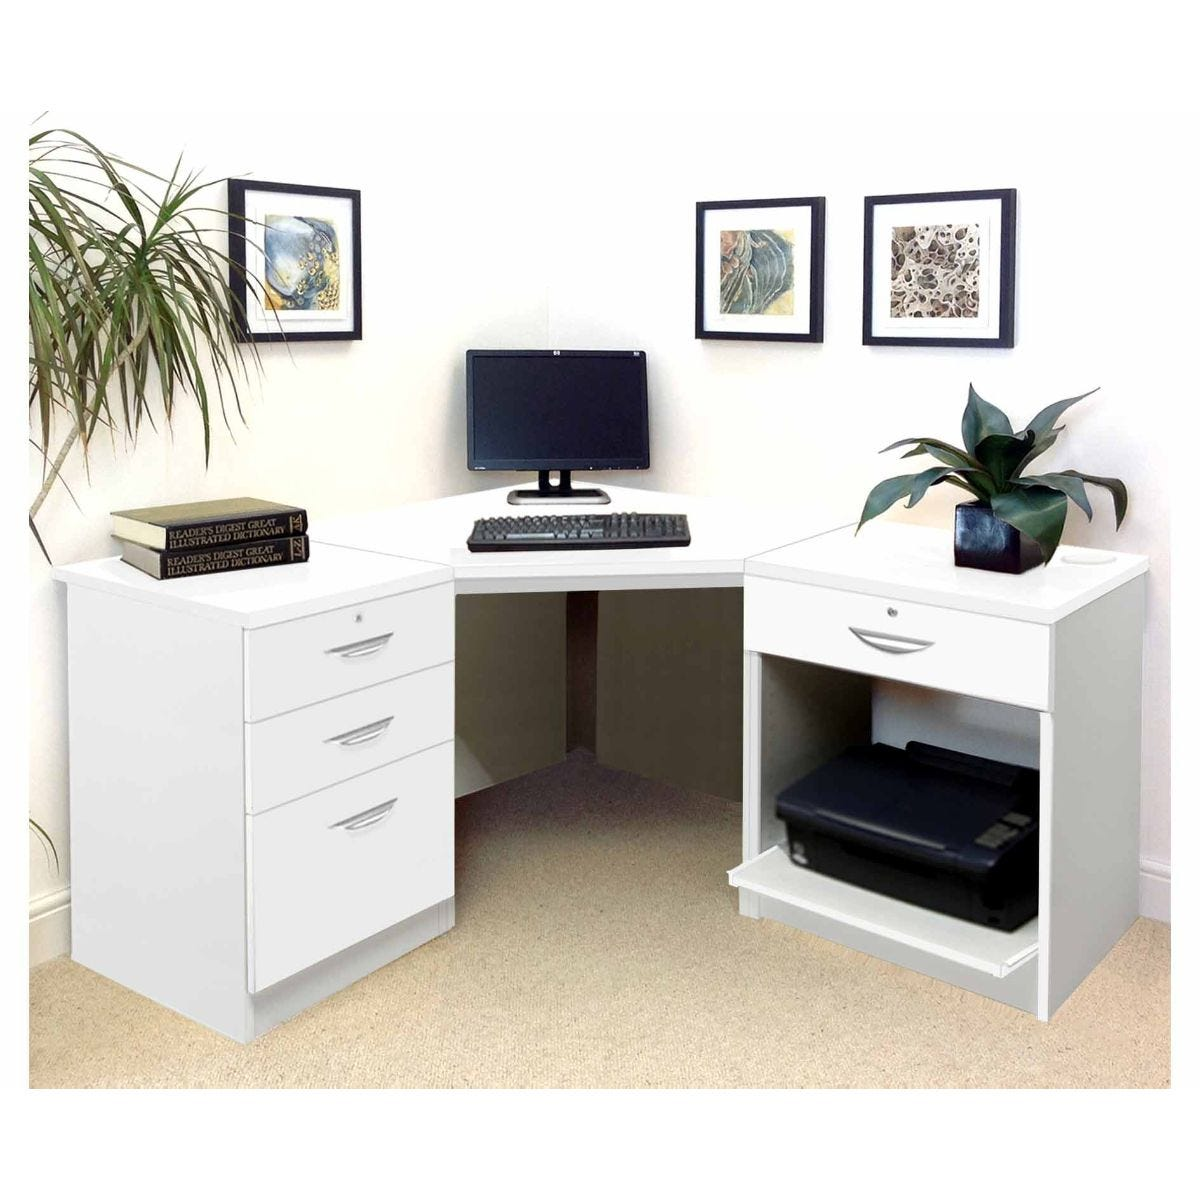 R white home office corner desk white satin kb tyres - Home office corner desk ...